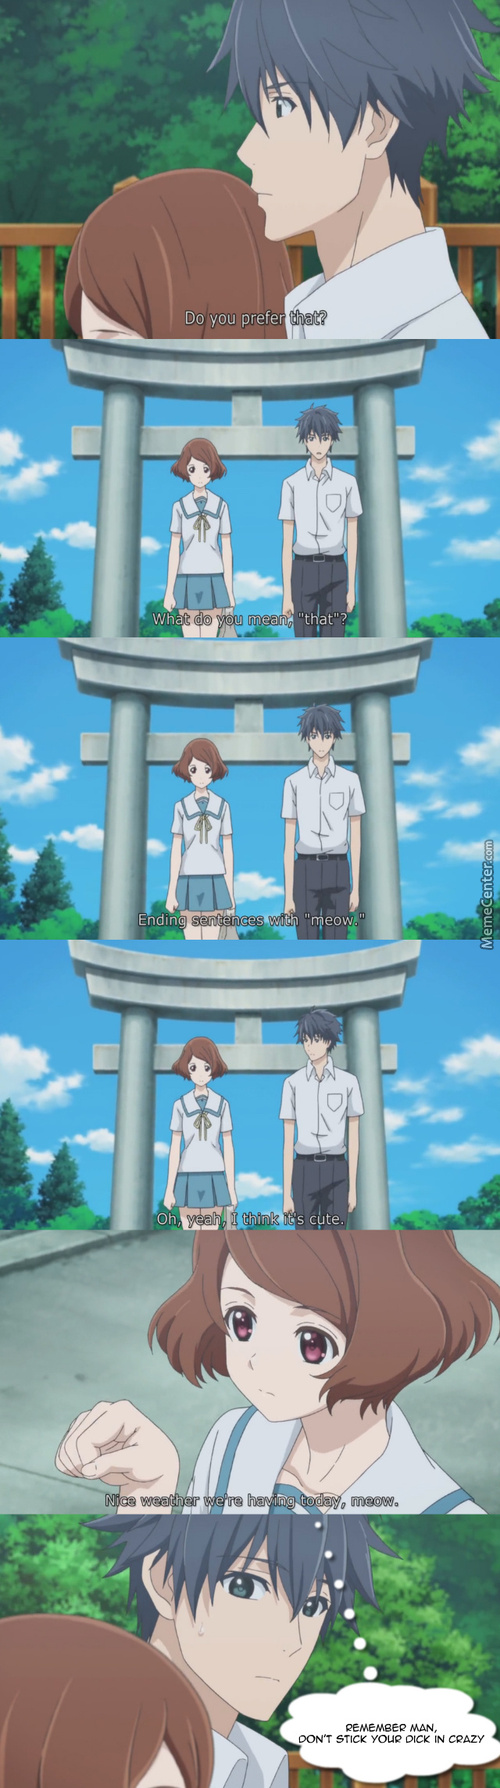 Personally Would Do (Sagrada Reset)